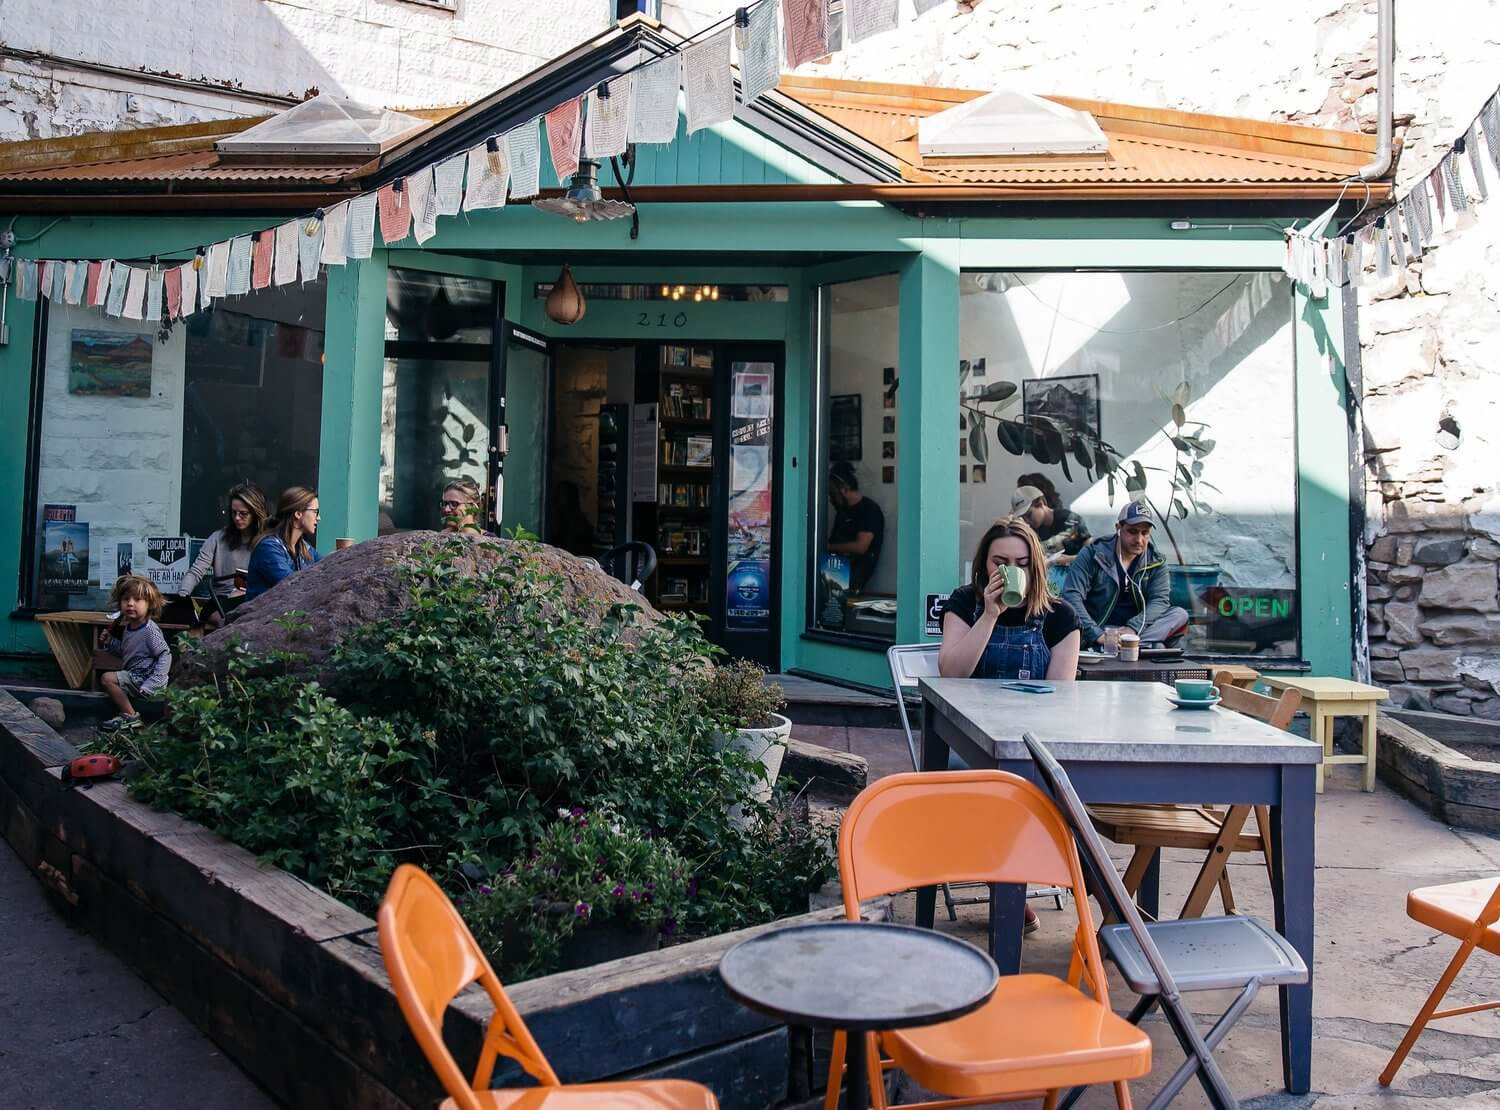 Ghost town coffee, things to do in Telluride in October